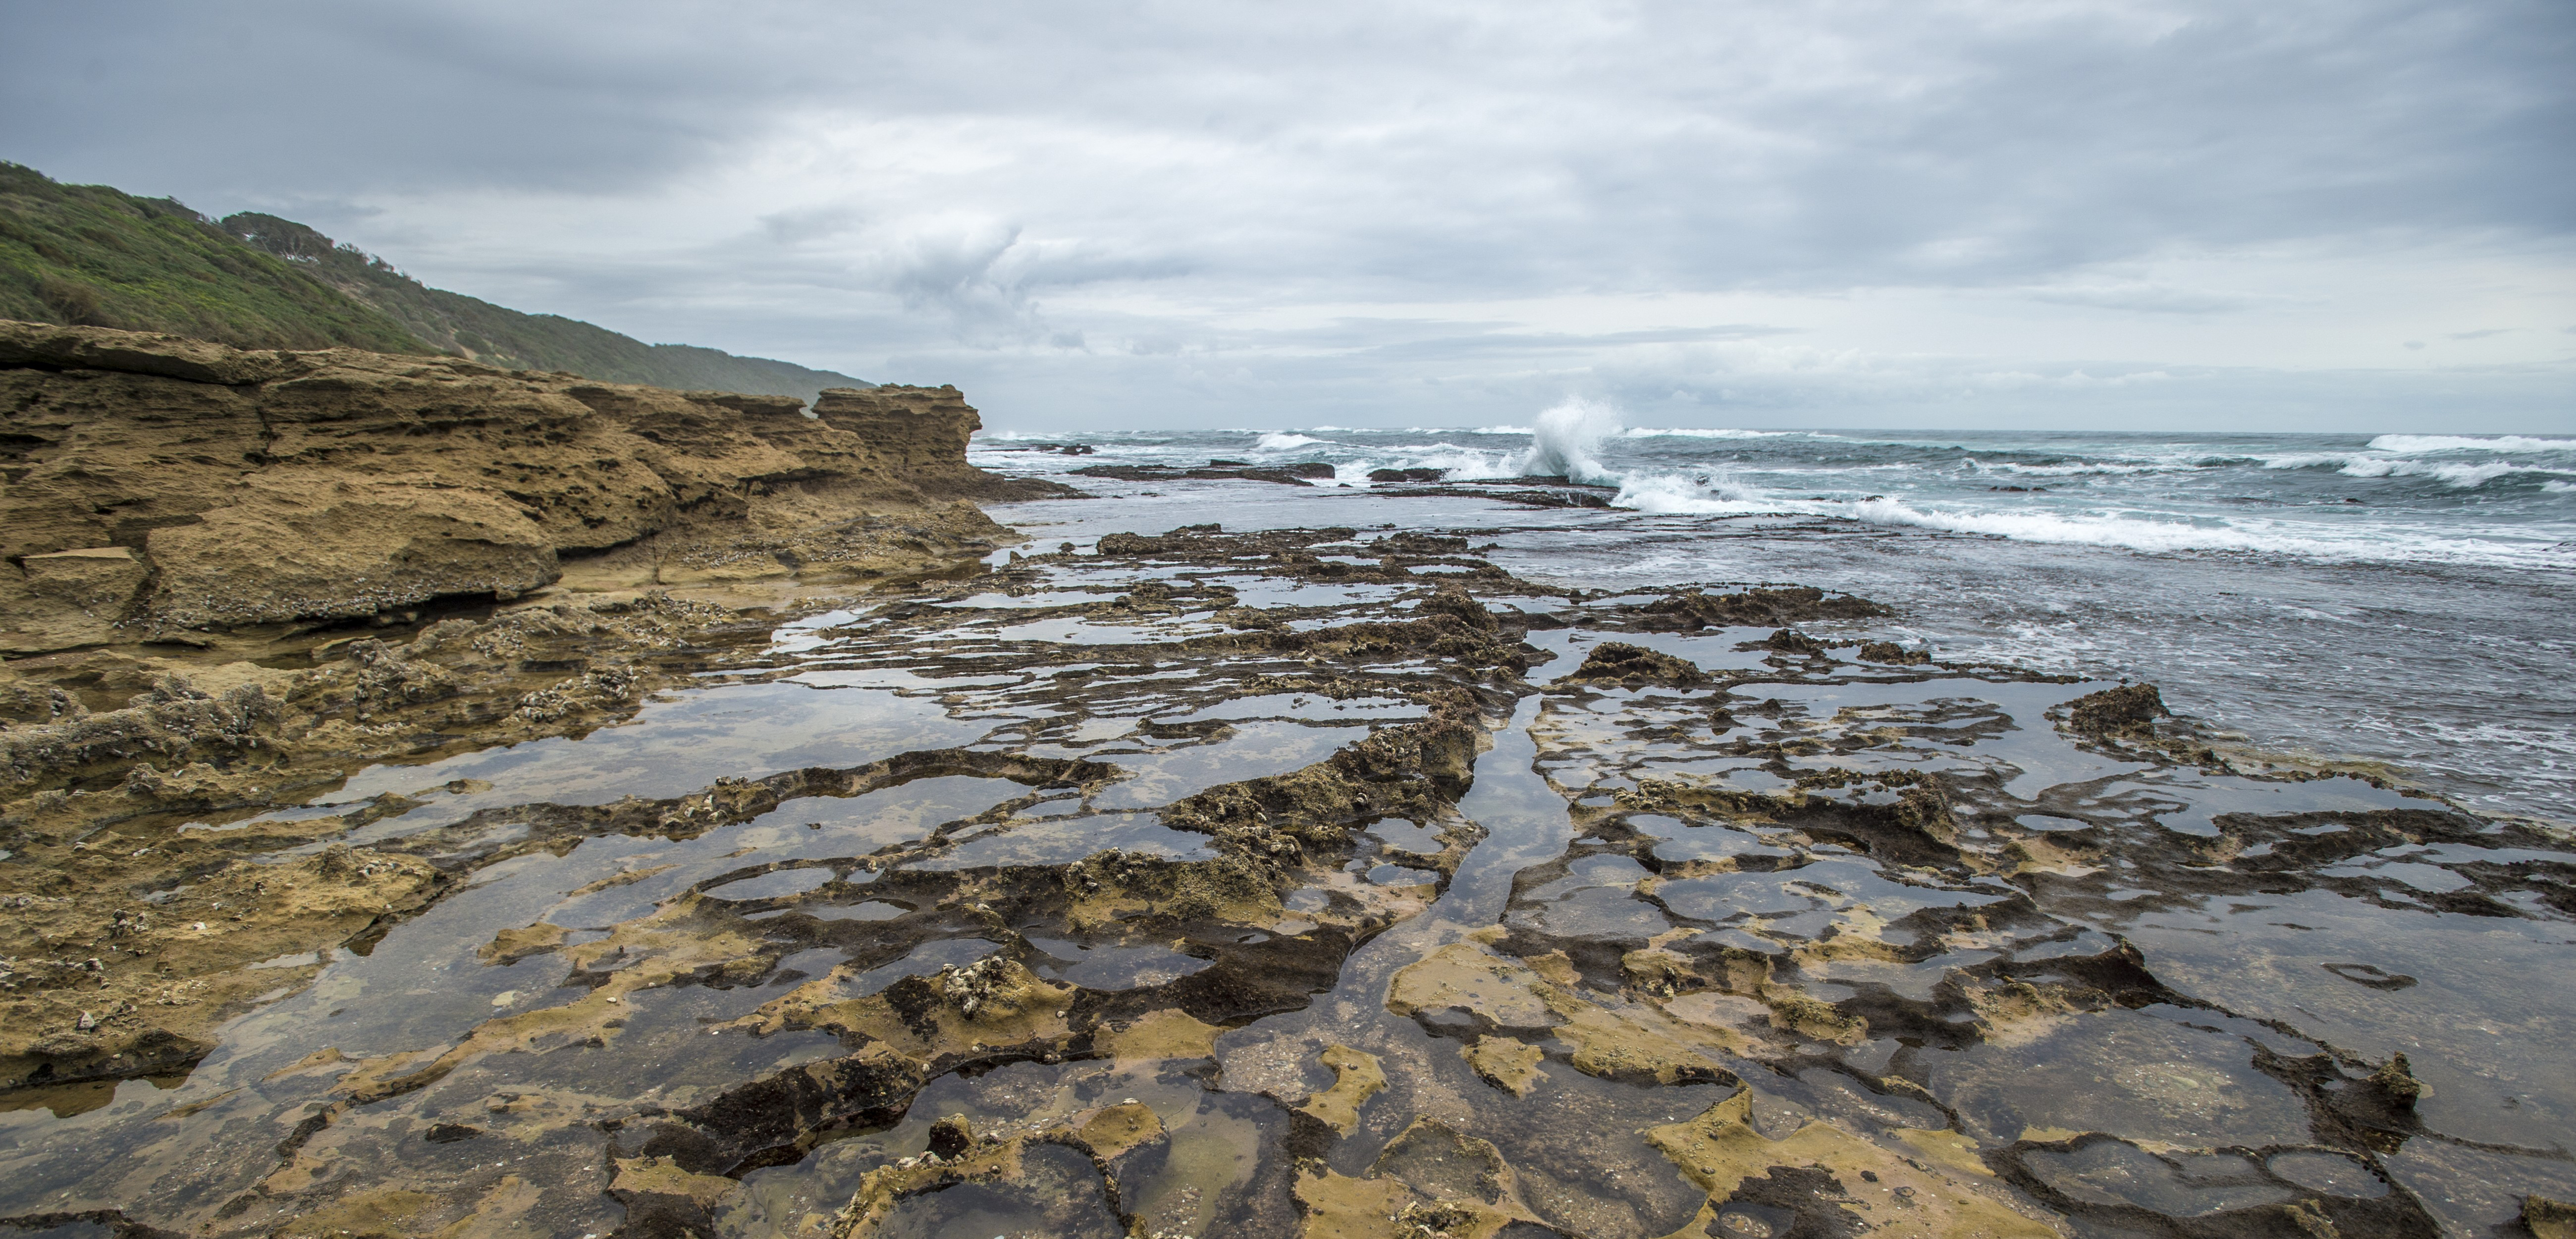 Tide pools, being relatively isolated, are ideal for experimental manipulation. Photo by Edwin Remsberg/Corbis